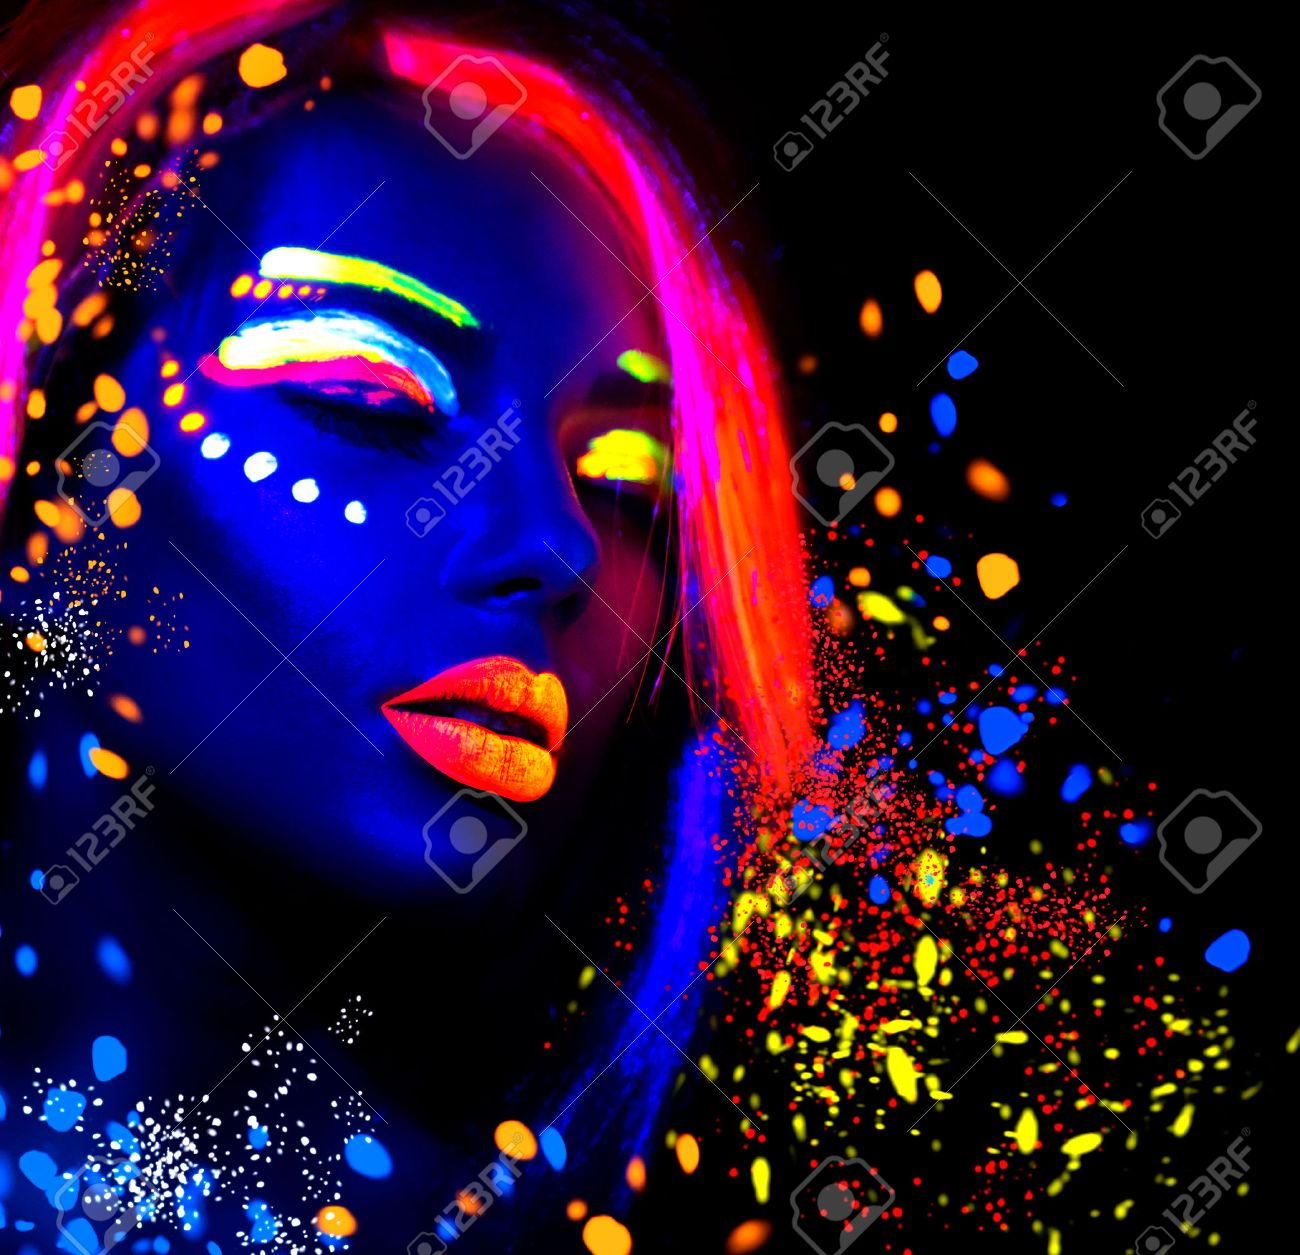 Fashion model woman in neon light, portrait of beautiful model girl with fluorescent make-up - 58218988